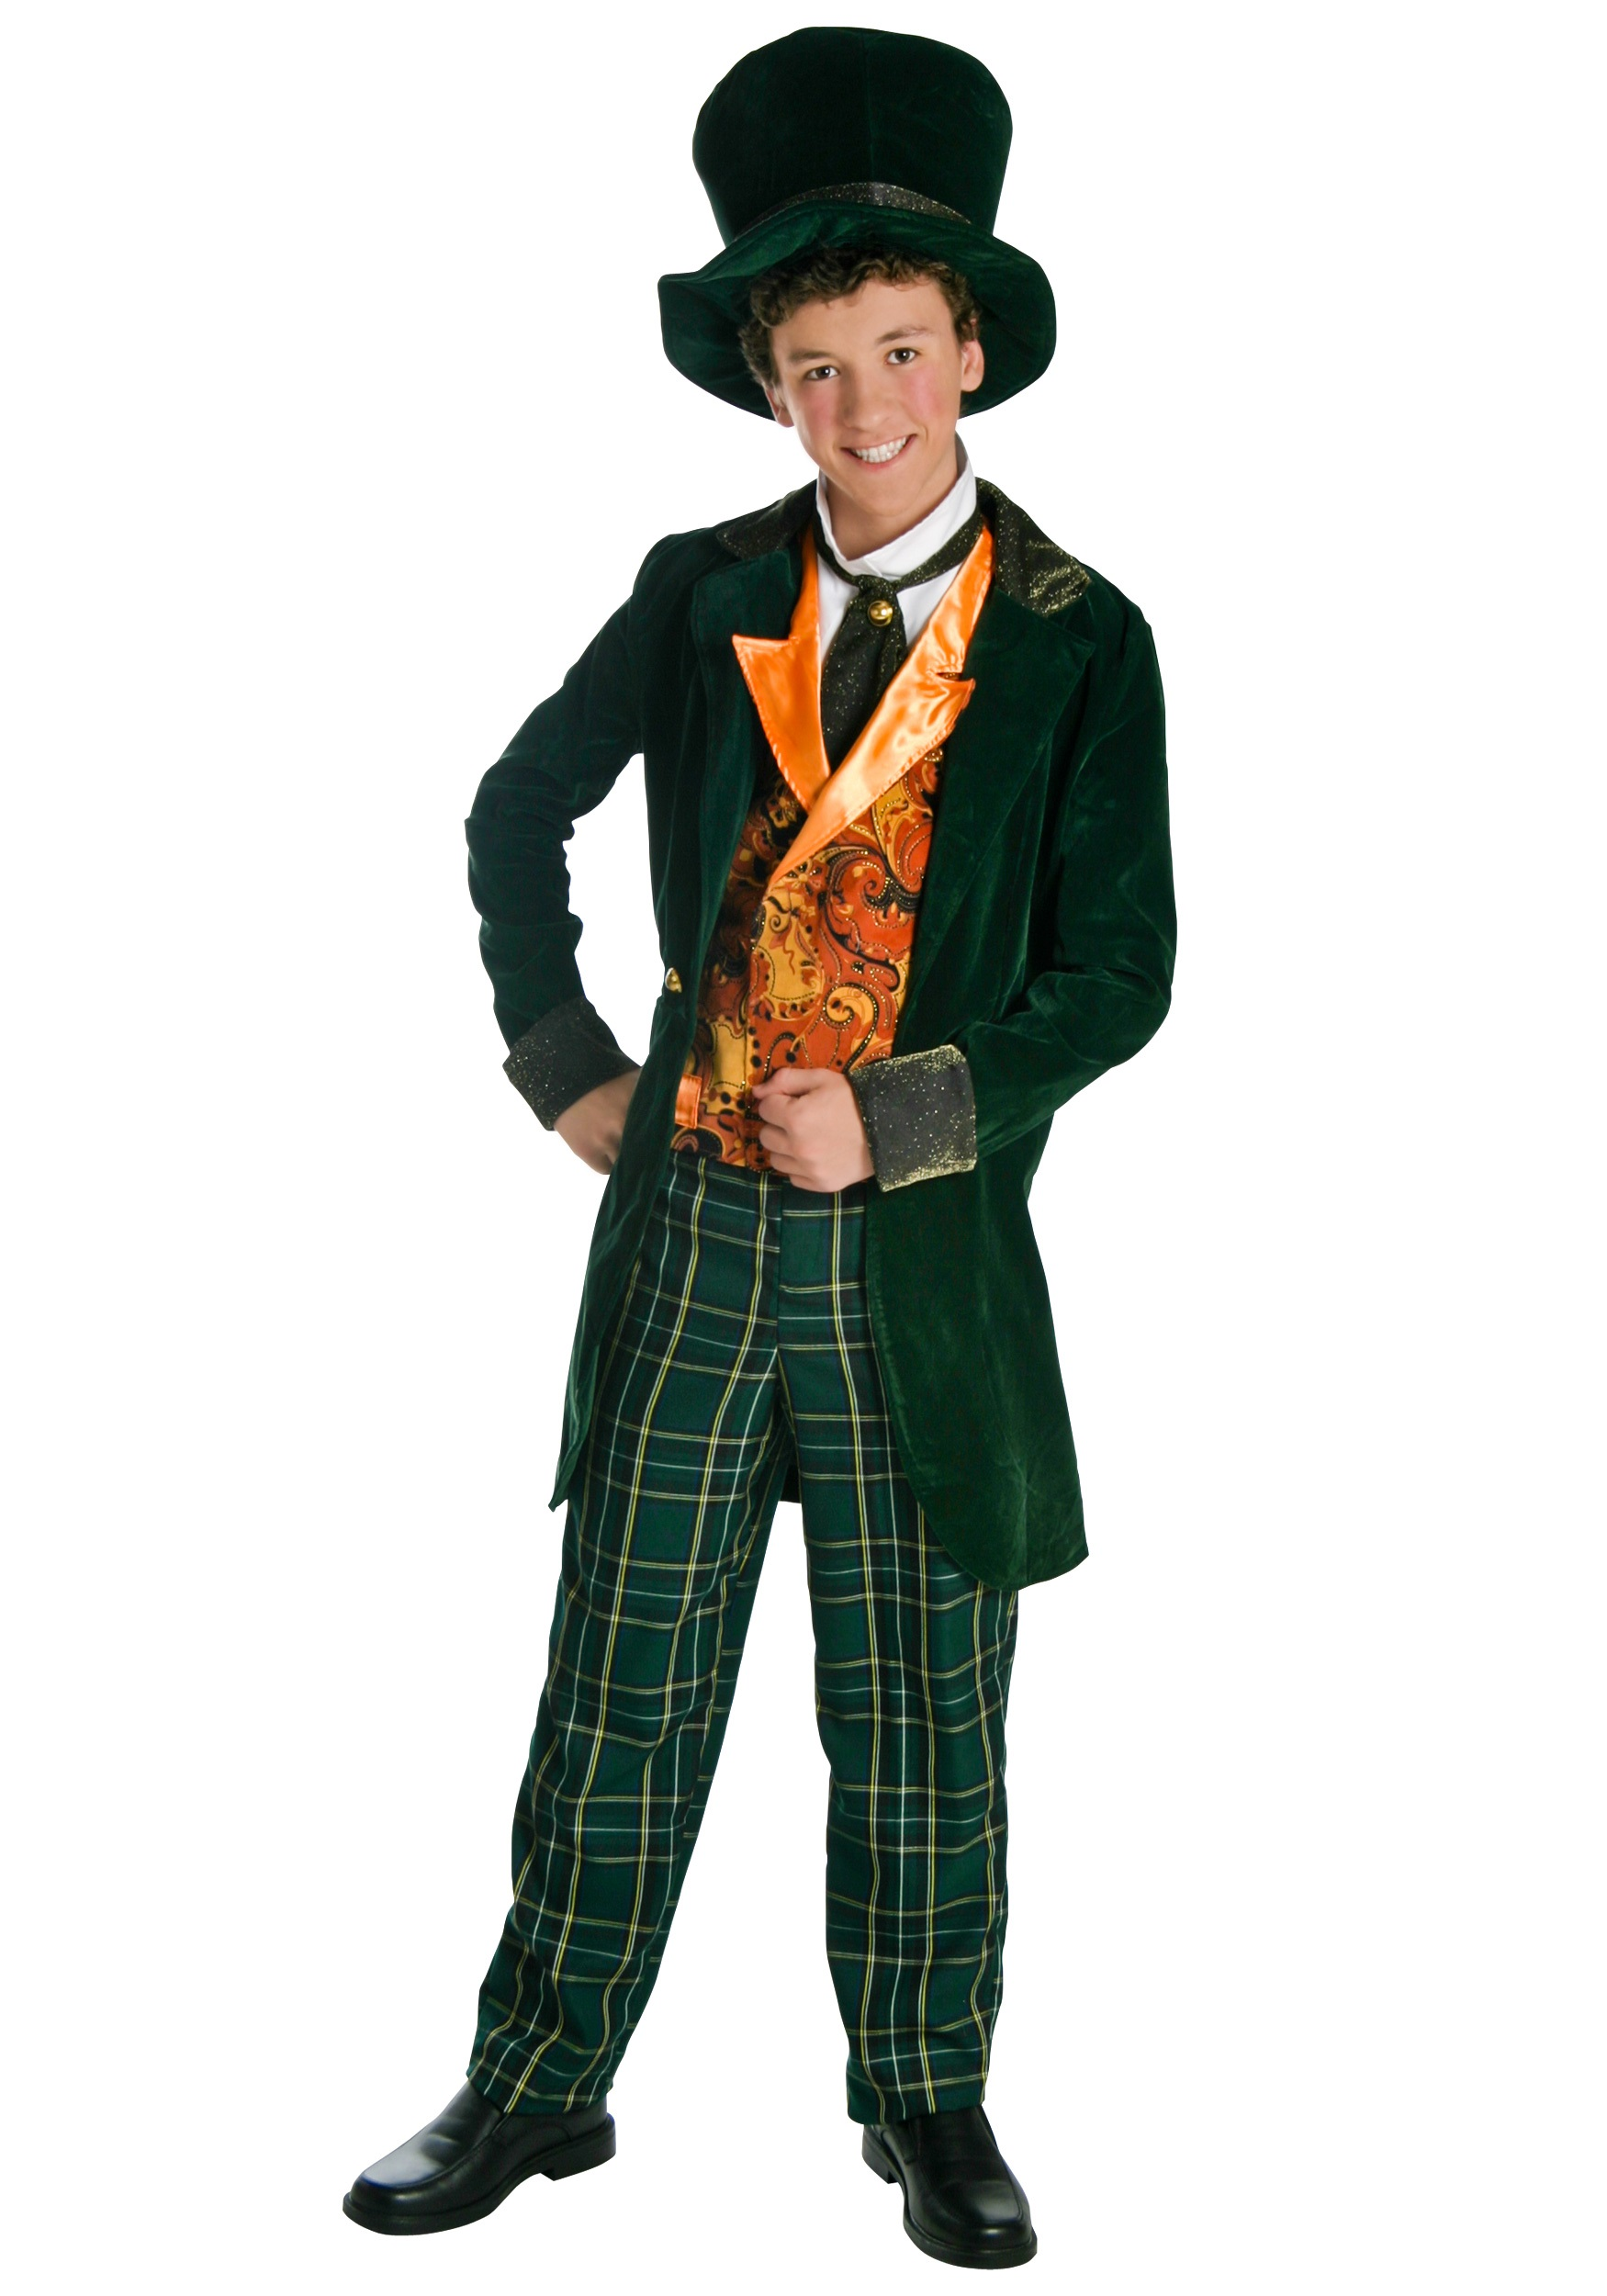 Deluxe Teen Mad Hatter Costume  sc 1 st  Halloween Costumes & Halloween Costumes for Teens u0026 Tweens - HalloweenCostumes.com